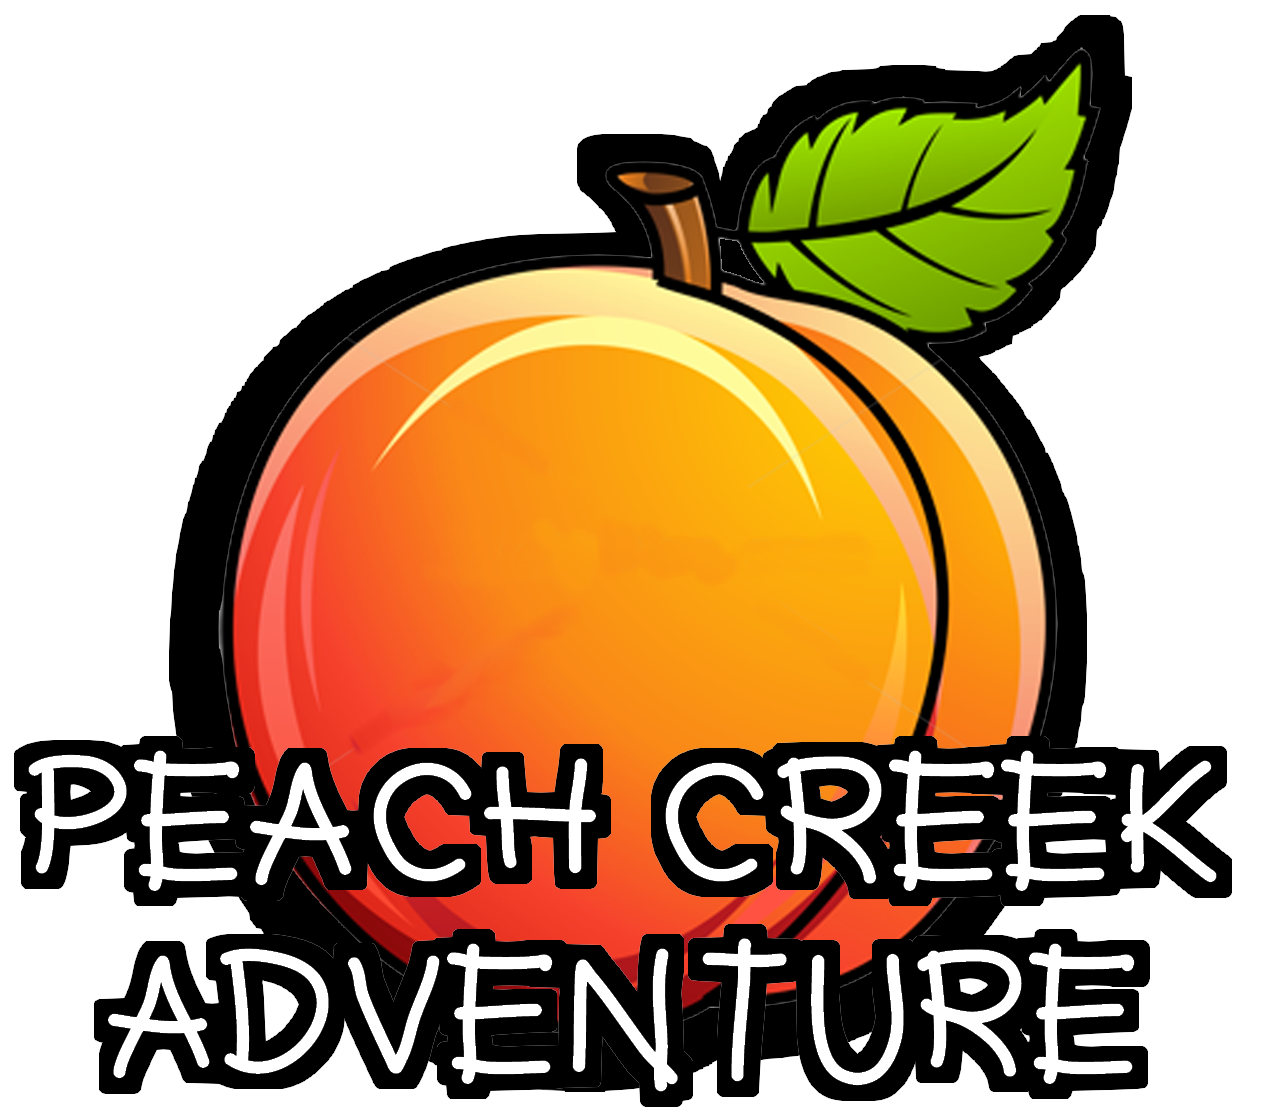 peach creek buddhist personals View the profiles of people named got in peach join facebook to connect with got in peach and others you may know facebook gives people the power to.